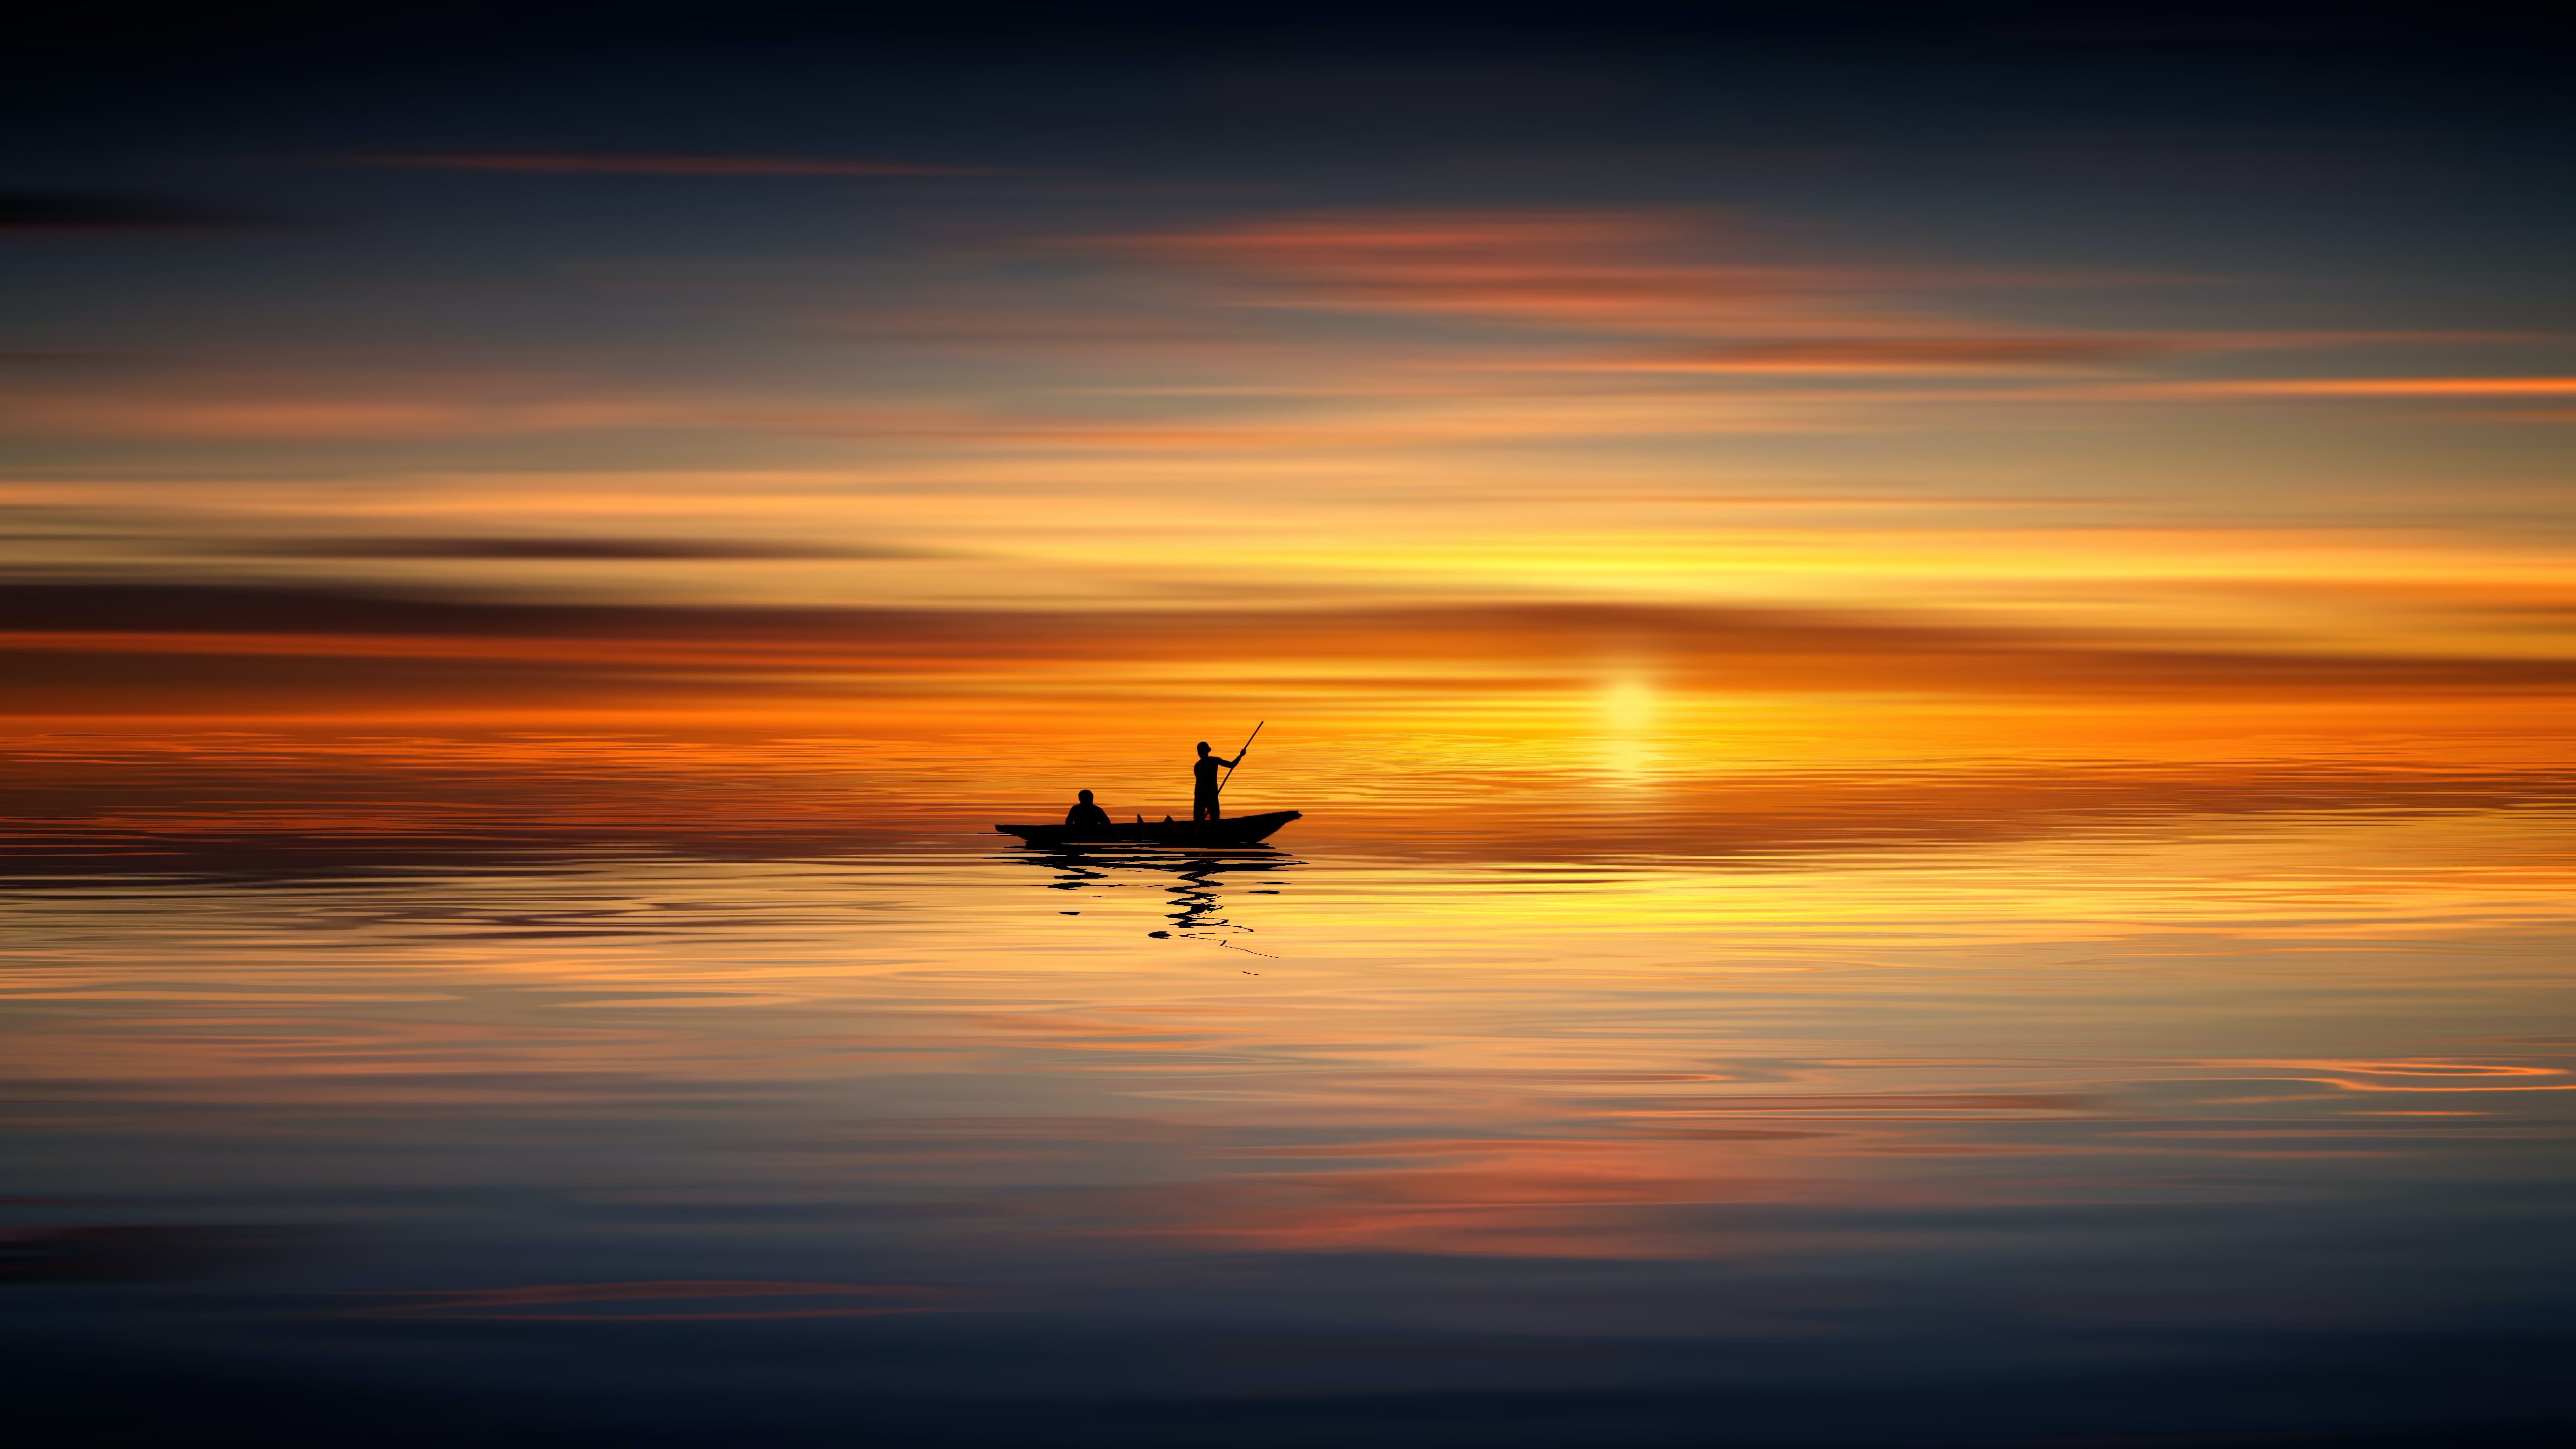 Photo of People on Rowboat During Sunset